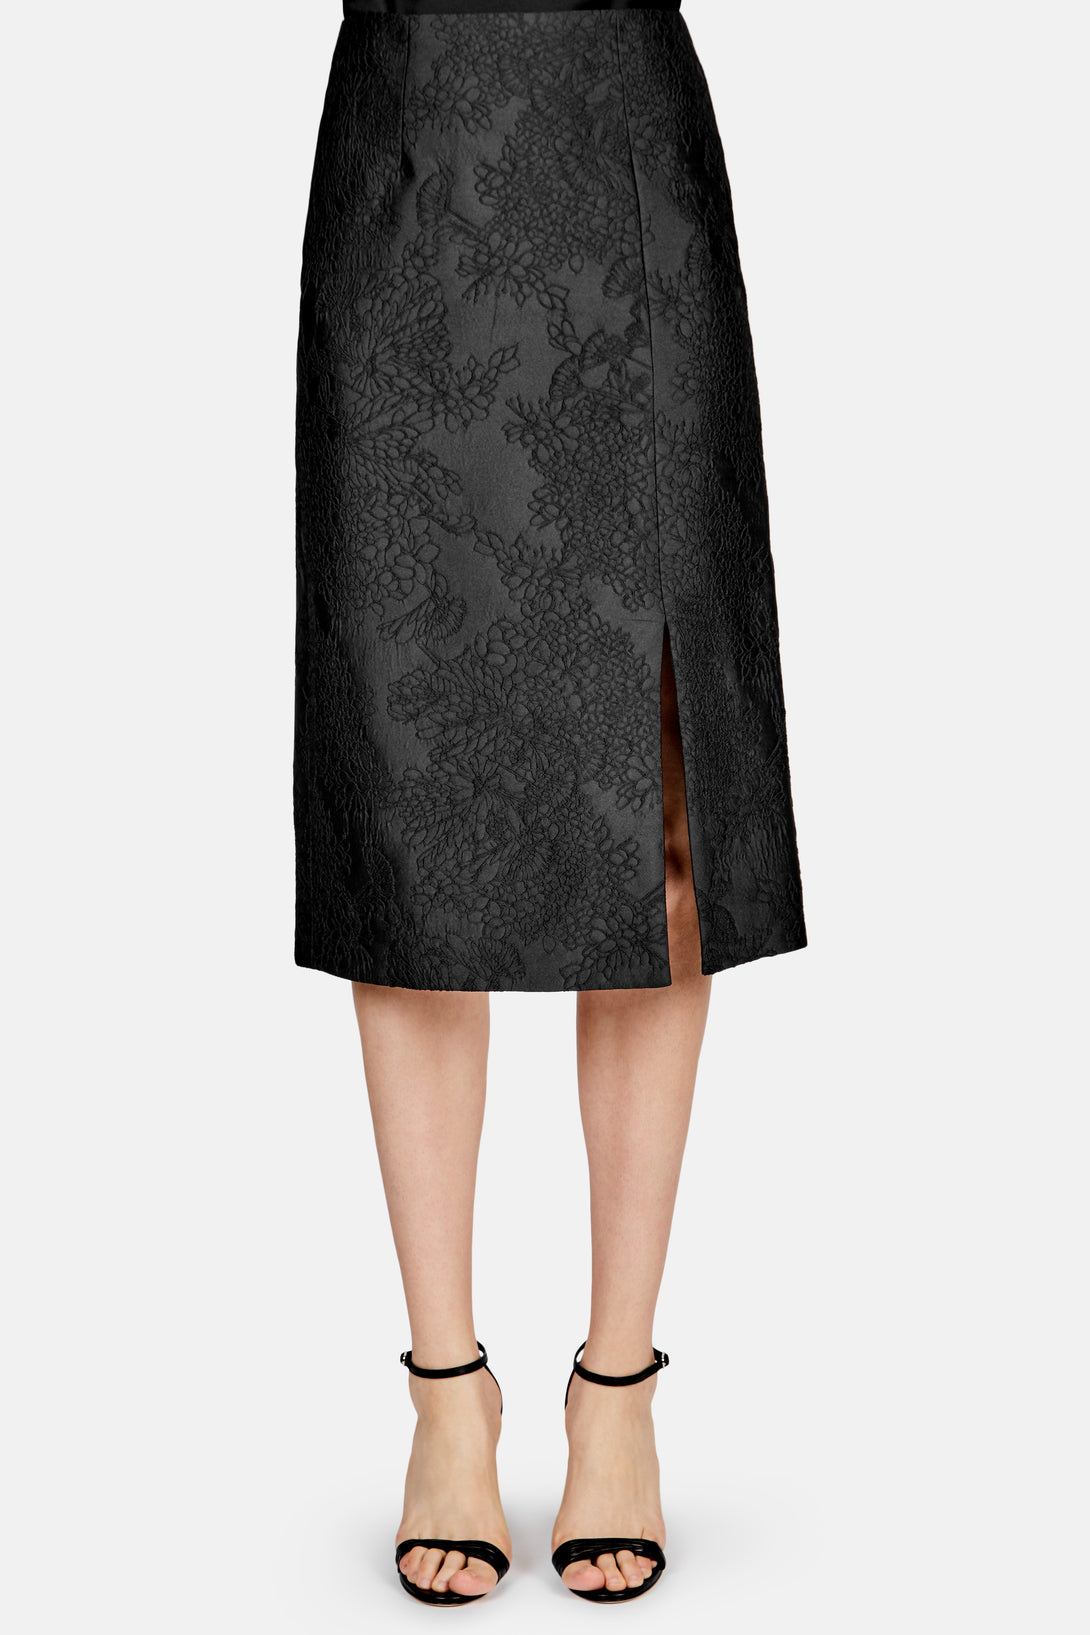 Tahira Skirt - Rose Jacquard Black